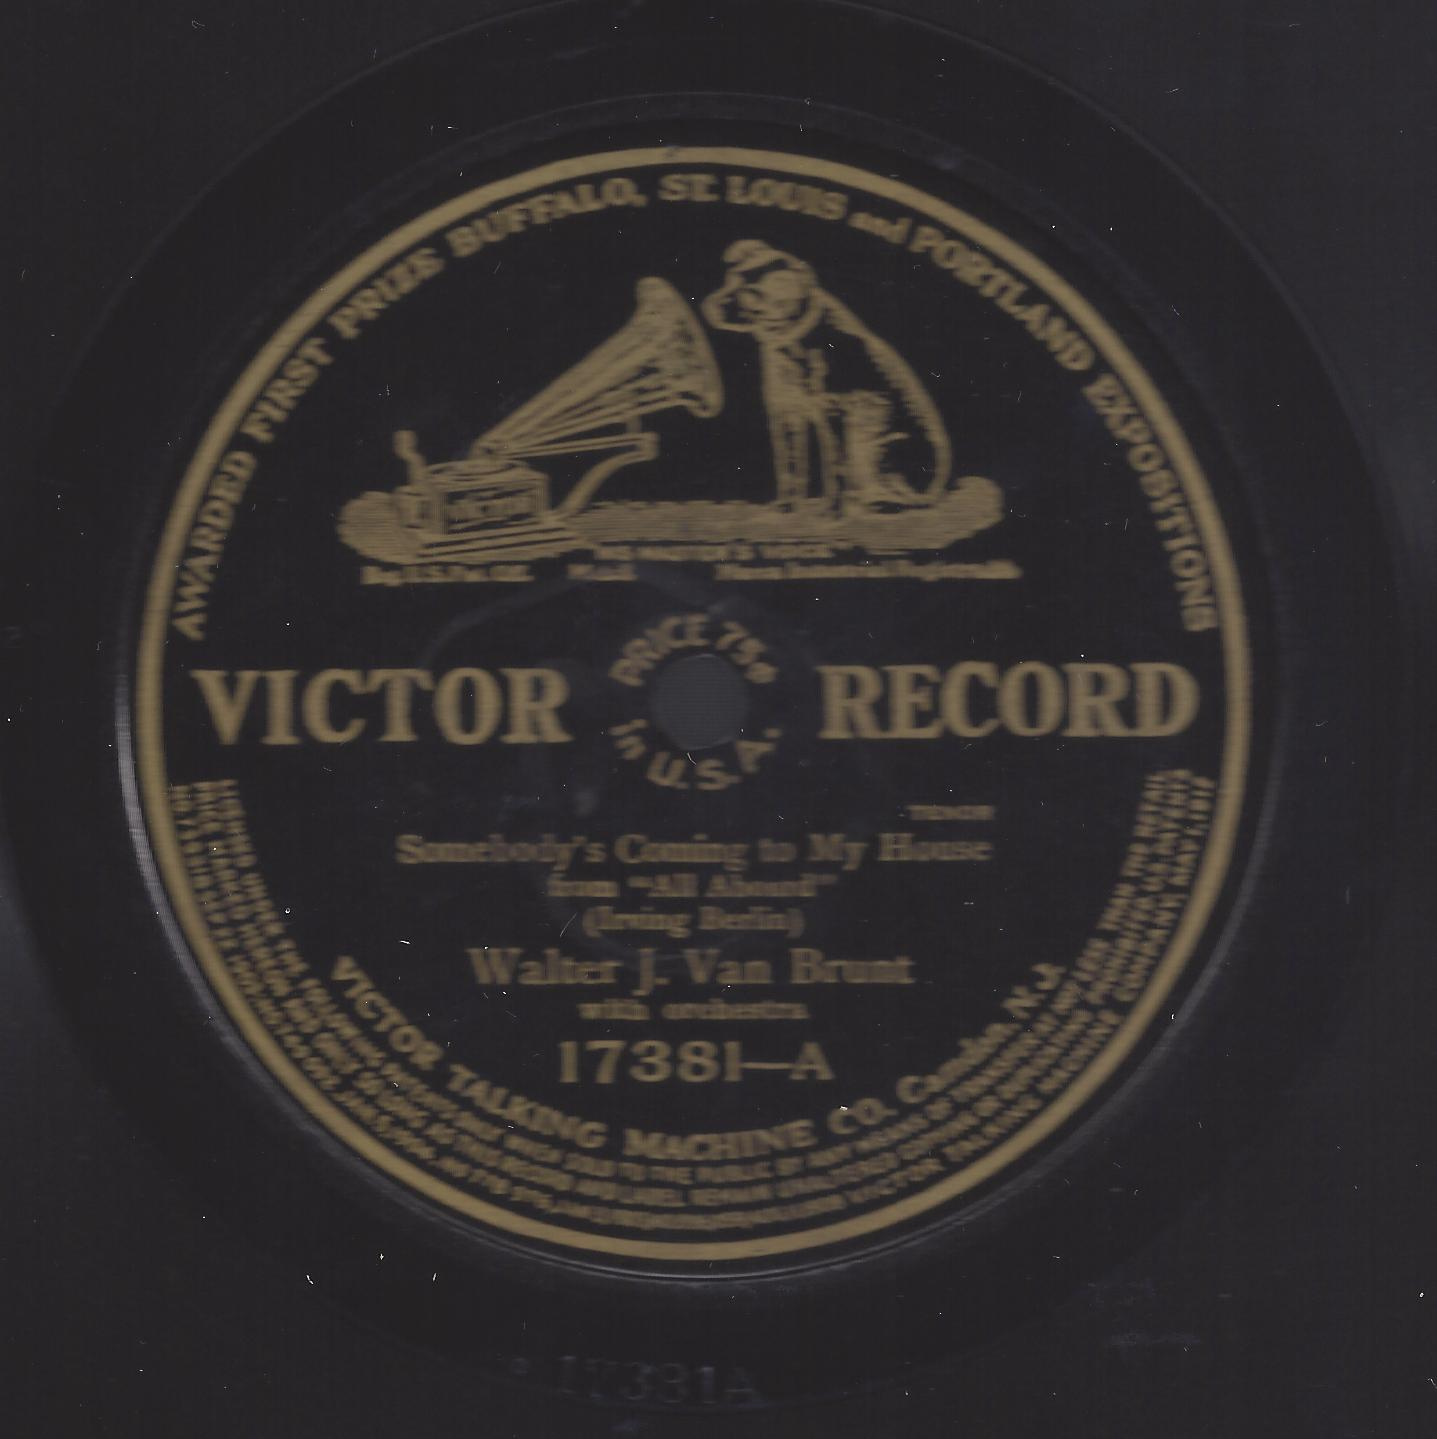 Dating victor 78 records